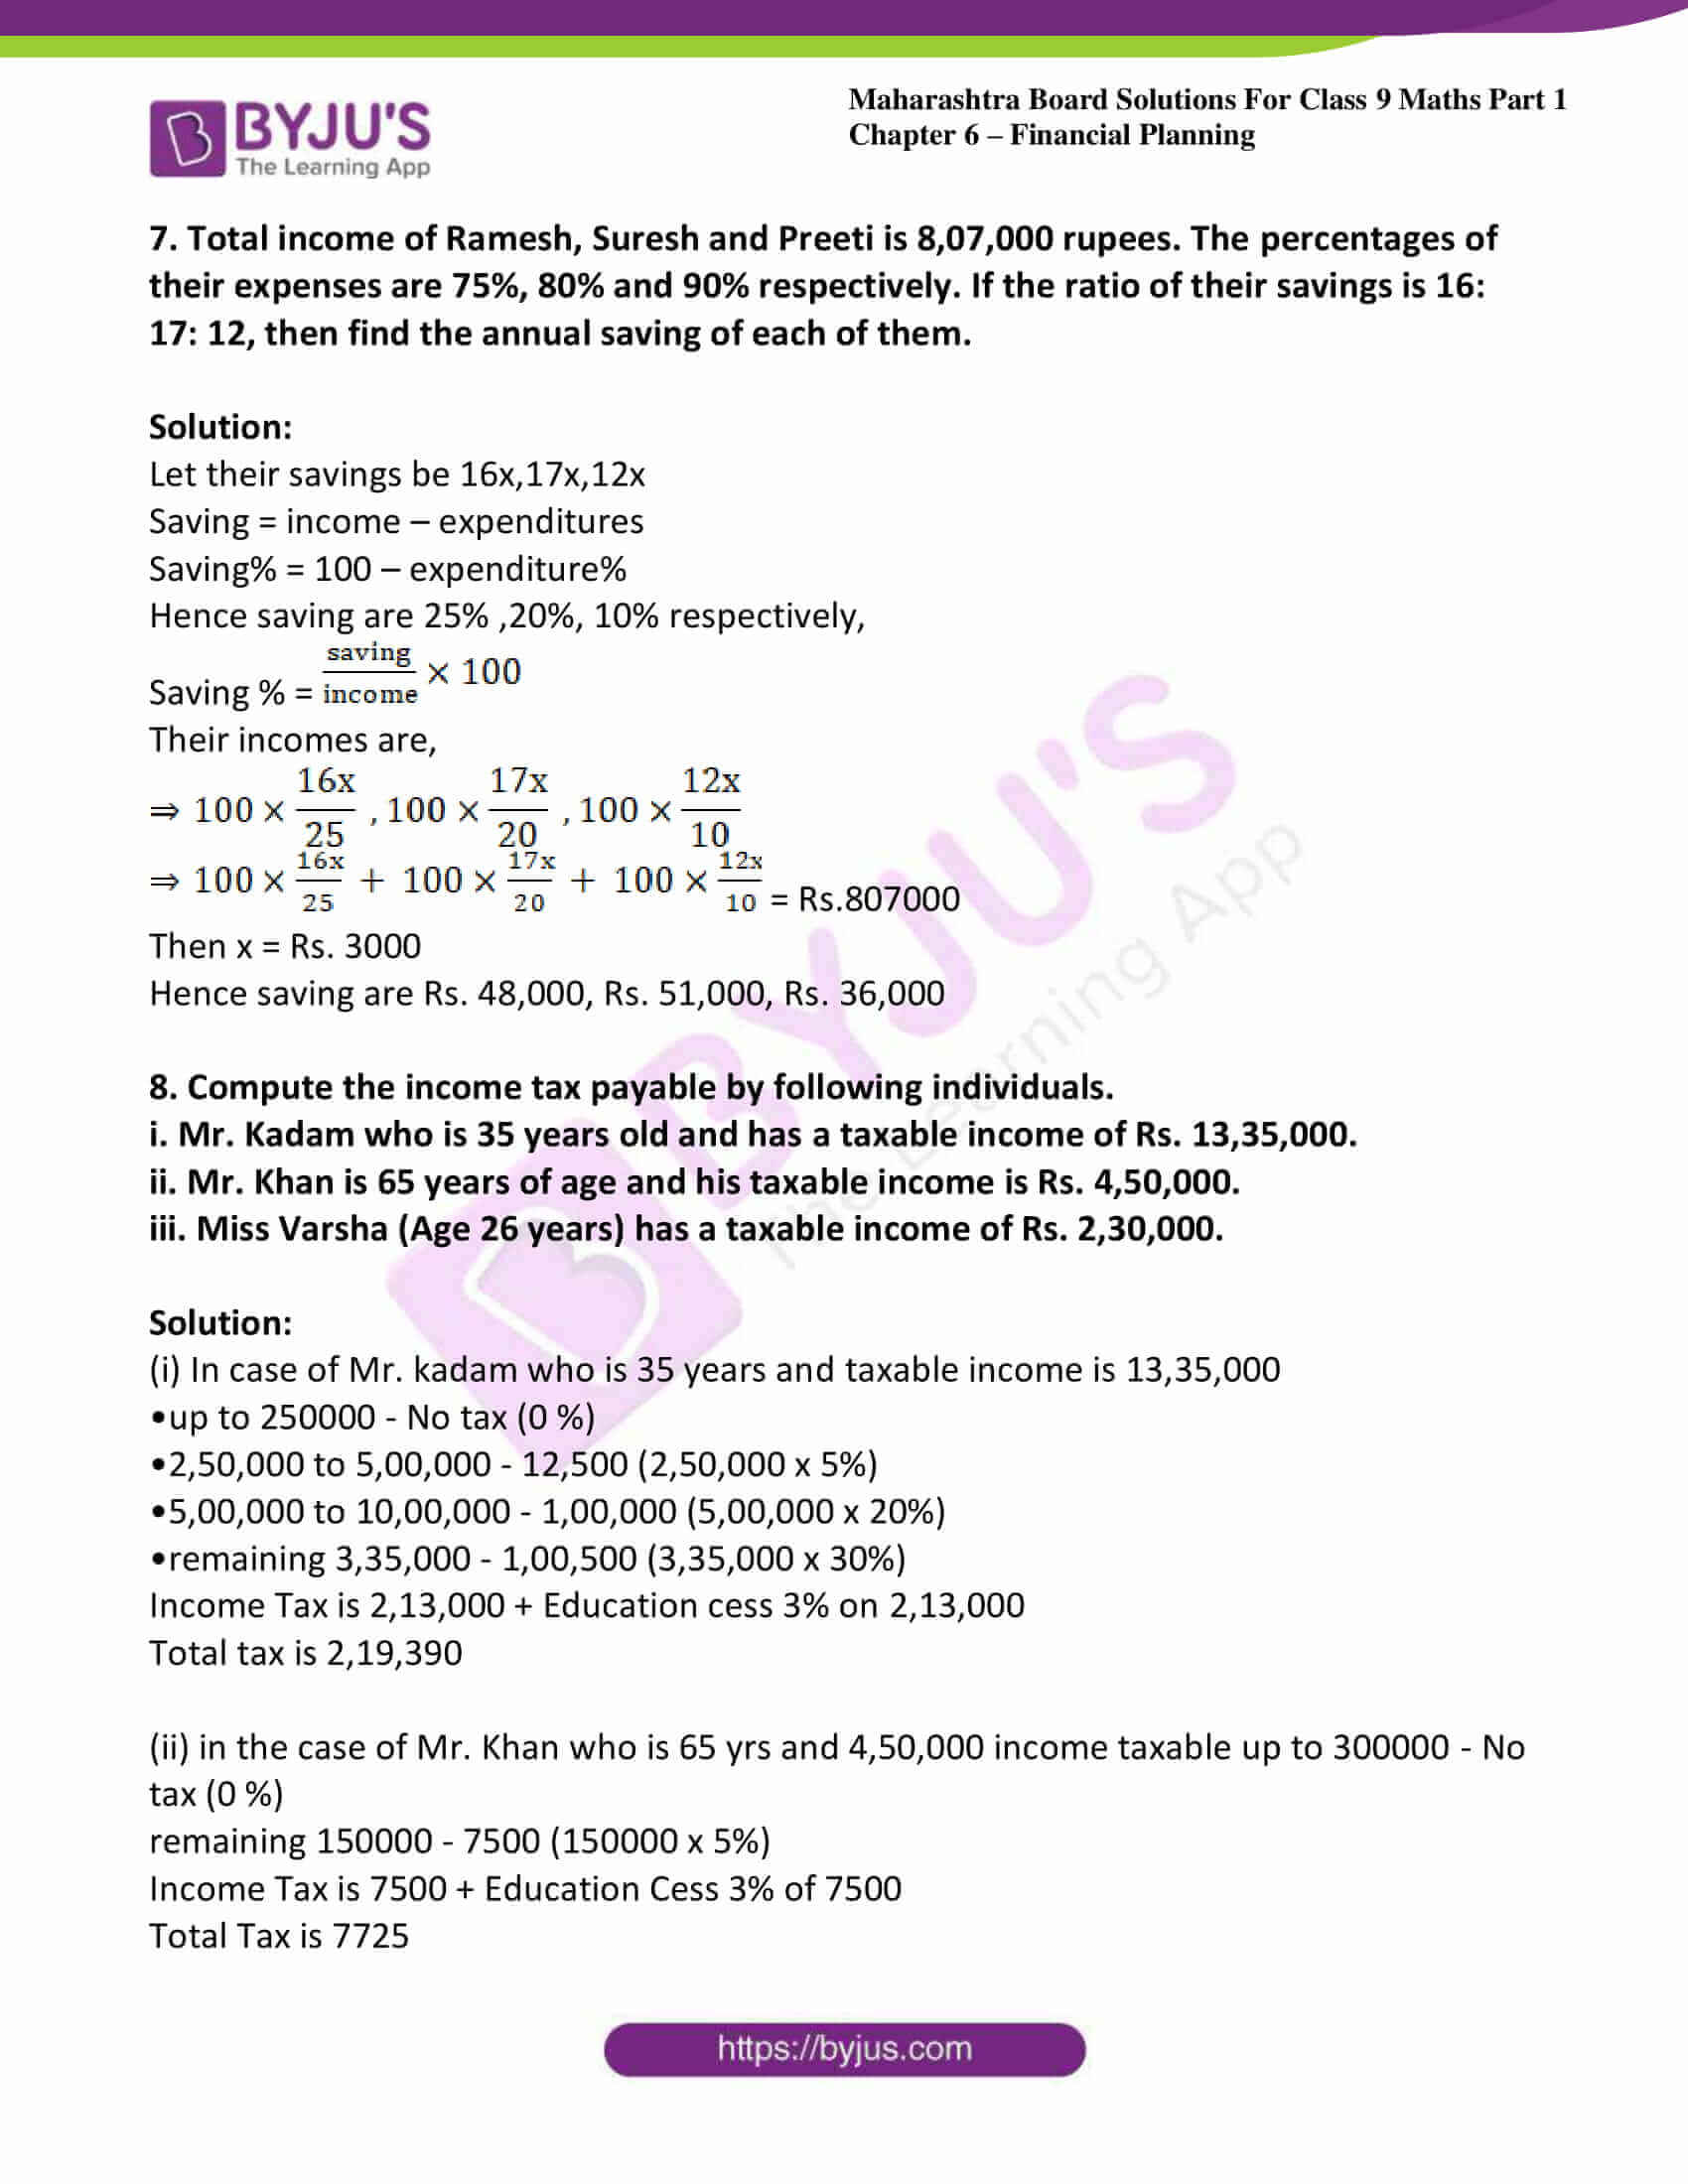 msbshse sol class 9 maths part 1 chapter 6 financial planing 12